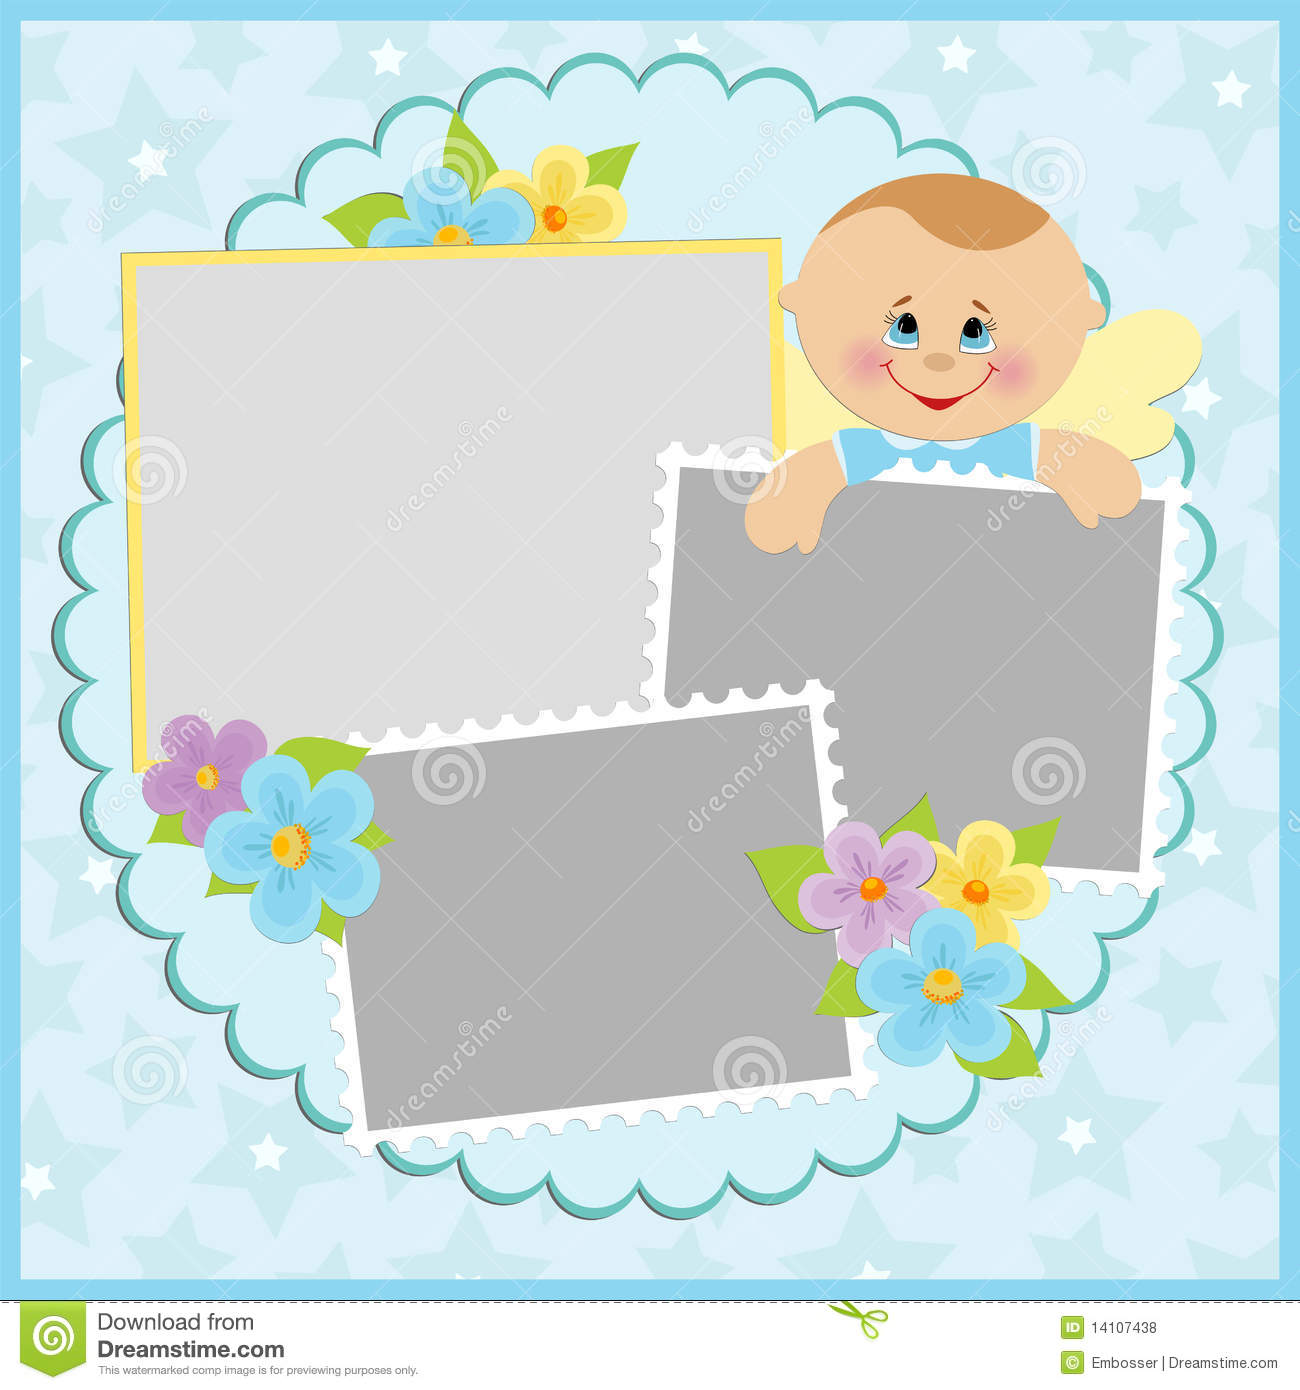 Template For Baby S Photo Album. Border, Cartoon.  Free Album Templates